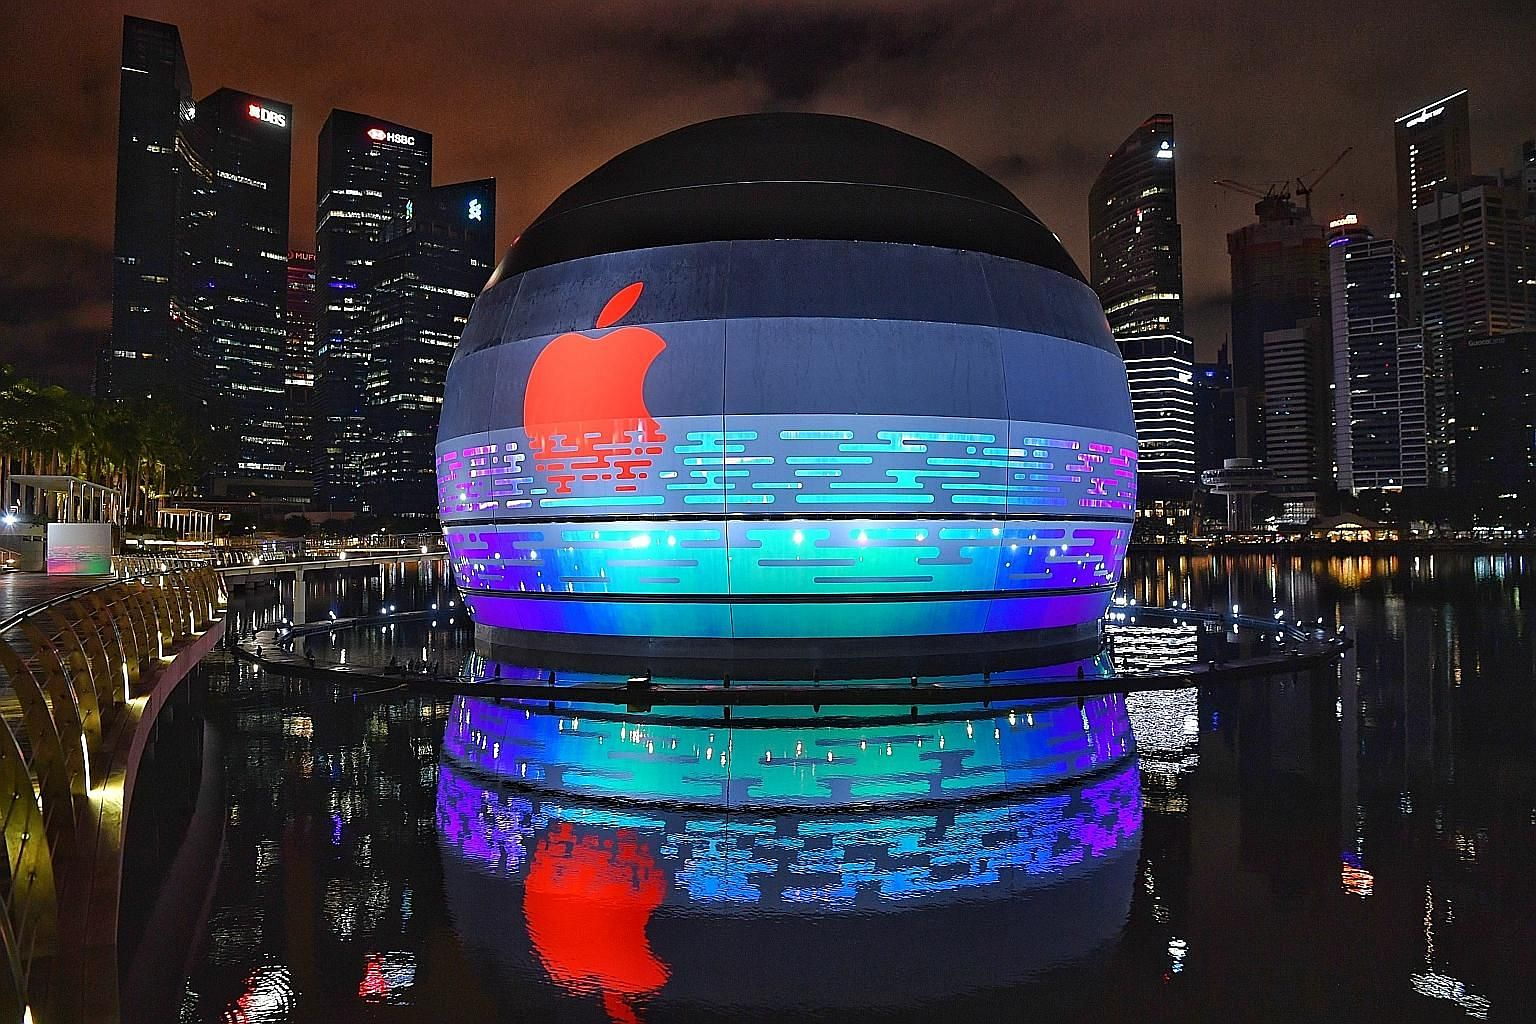 Apple's new store will be situated in the dome-like structure sitting on the water off Marina Bay Sands that was occupied by mega nightclub Avalon from 2011 to 2016.